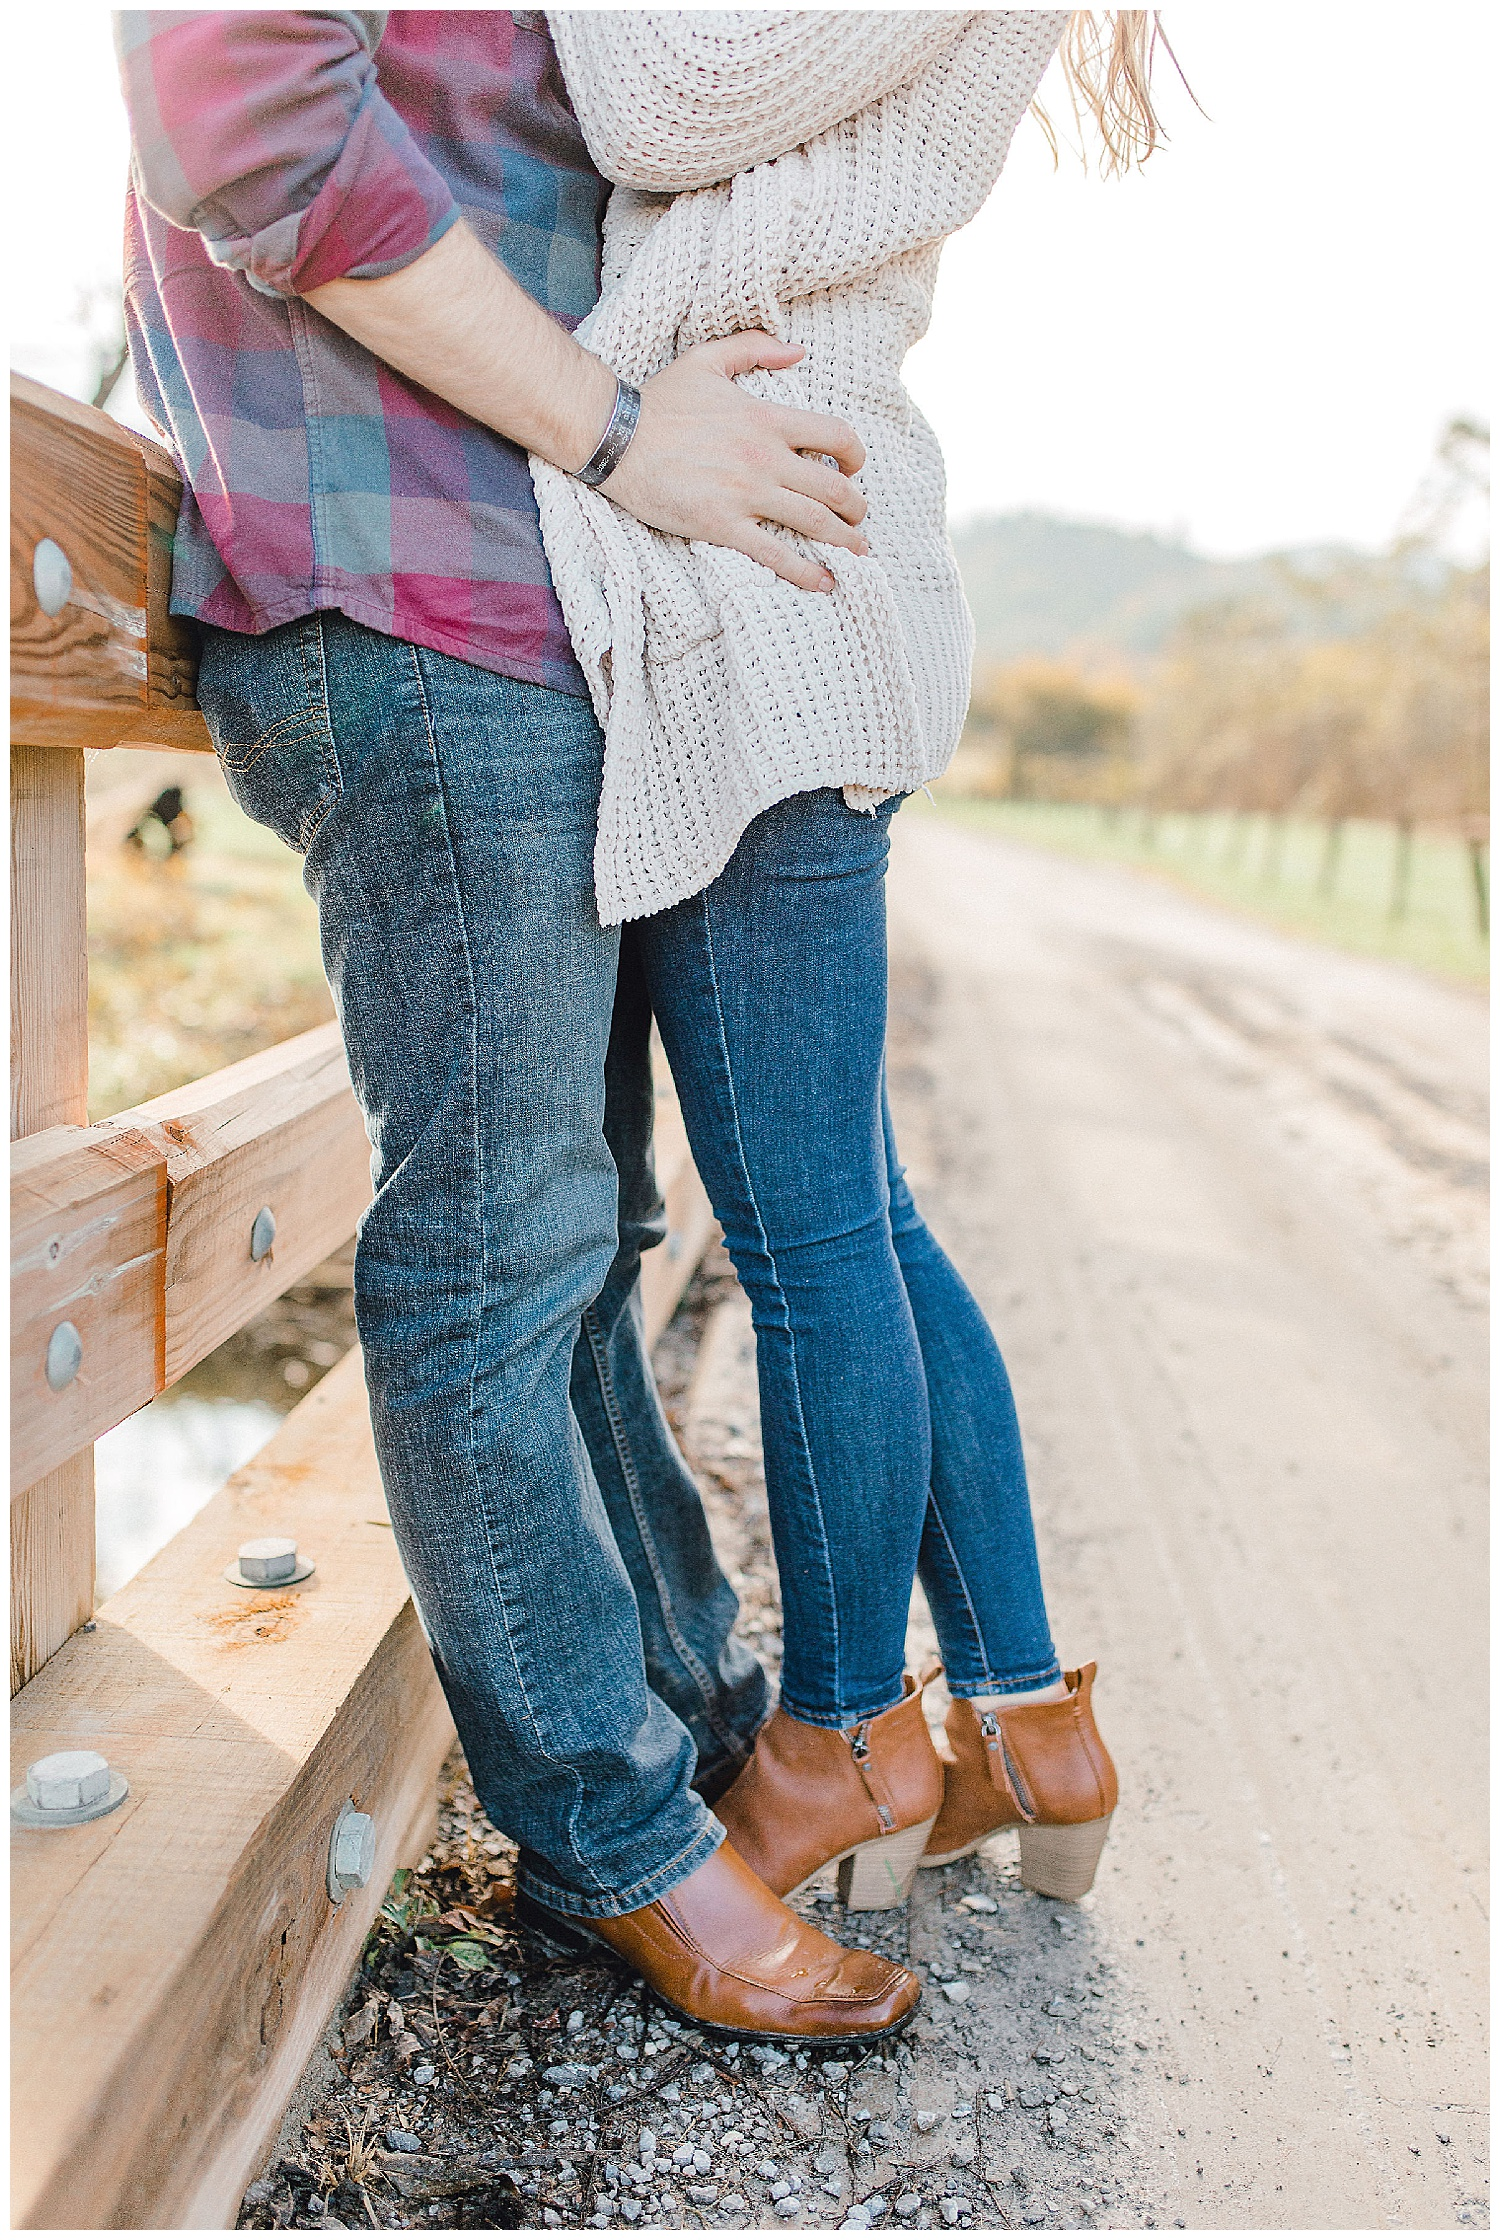 Great Smoky Mountains Engagement Session with Emma Rose Company_0044.jpg